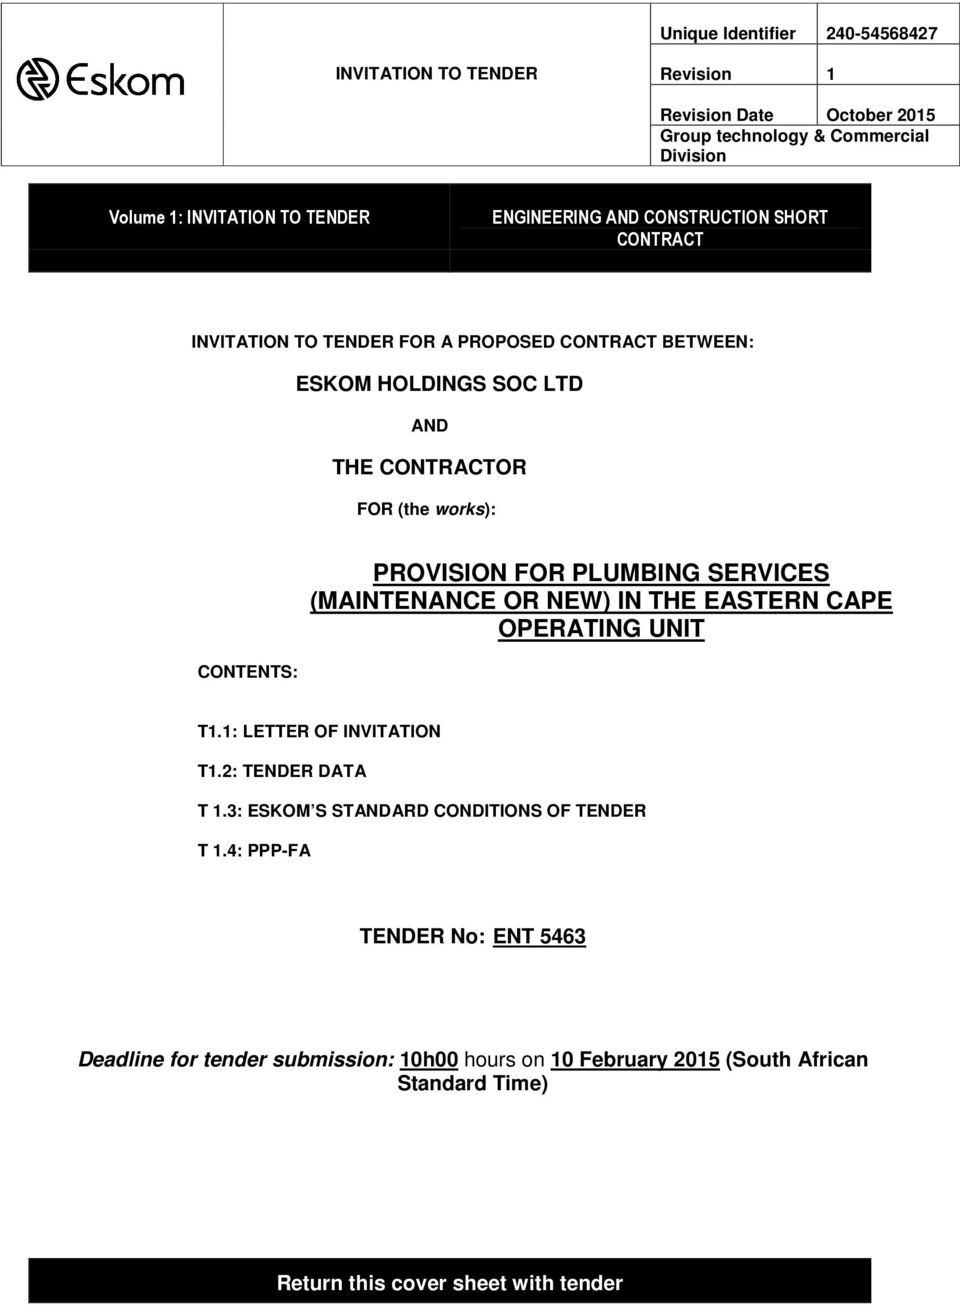 THE EASTERN CAPE OPERATING UNIT T1.1: LETTER OF INVITATION T1.2: TENDER DATA T 1.3: ESKOM S STANDARD CONDITIONS OF TENDER T 1.